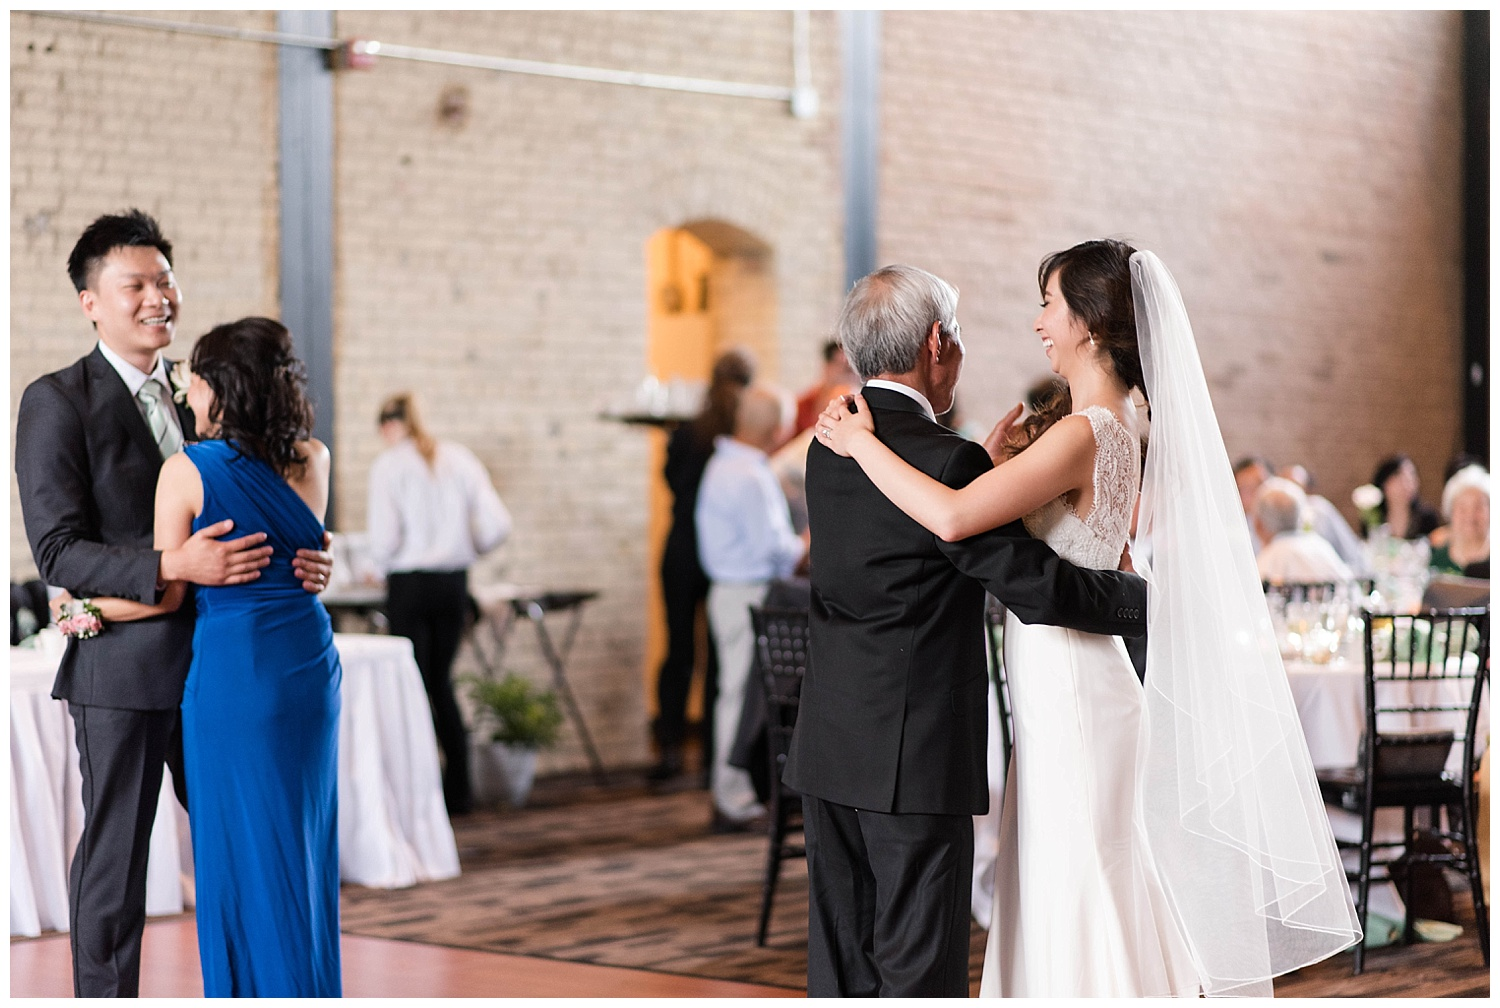 Weddings_by_Raisa_Photography_Saint_Mary_Magdalen_New_Vintage_Grand_Rapids_Michigan_Wedding_Photographer_0121.jpg